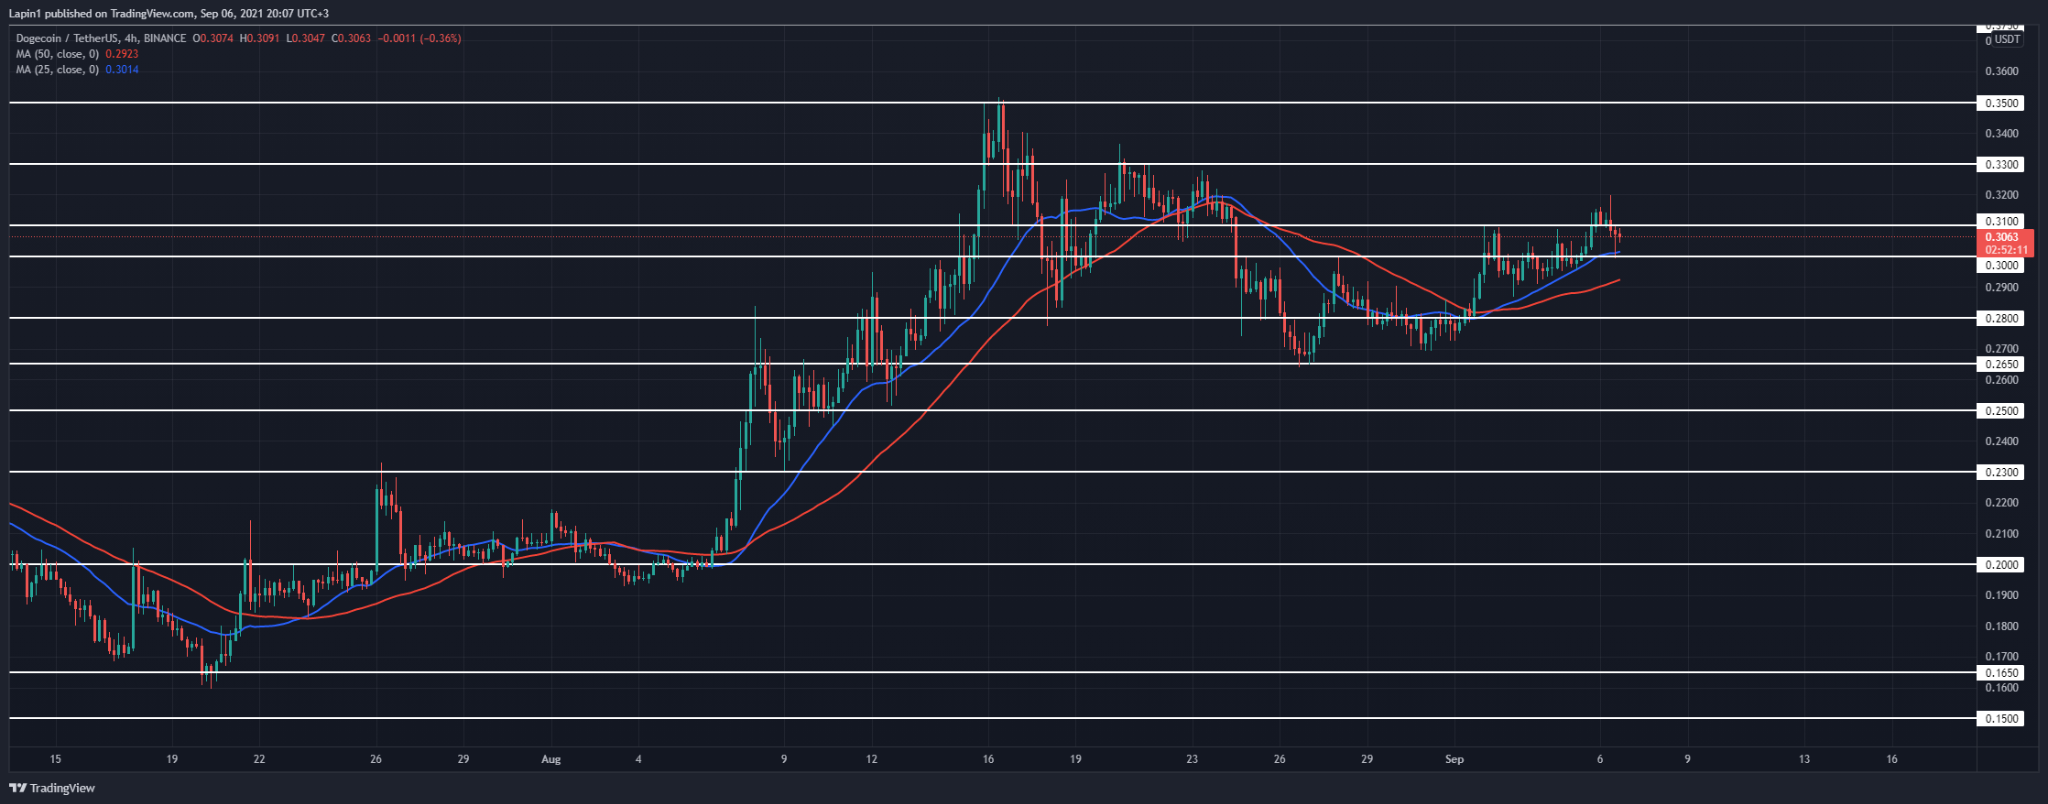 Dogecoin Price Analysis: DOGE retests $0.30 as support, targets $0.33 next?